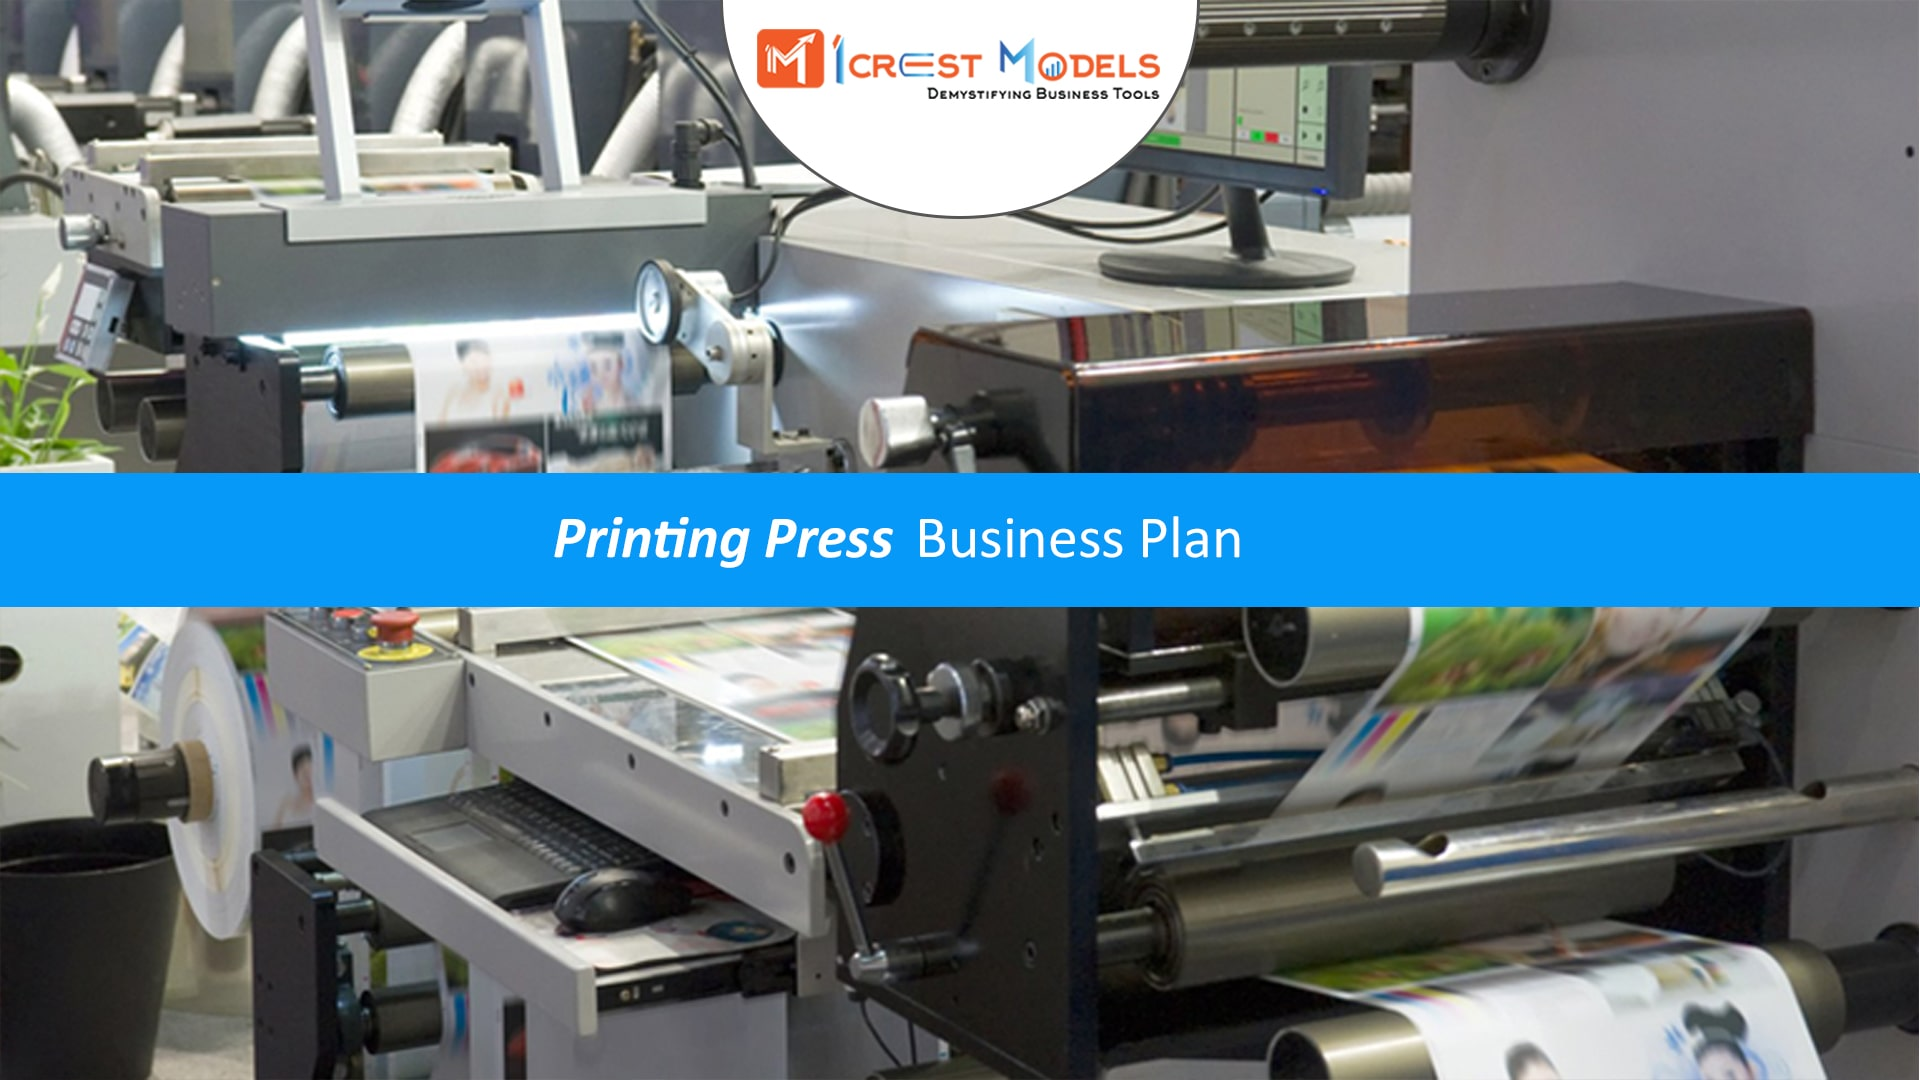 Somalia based Printing Press Business Plan